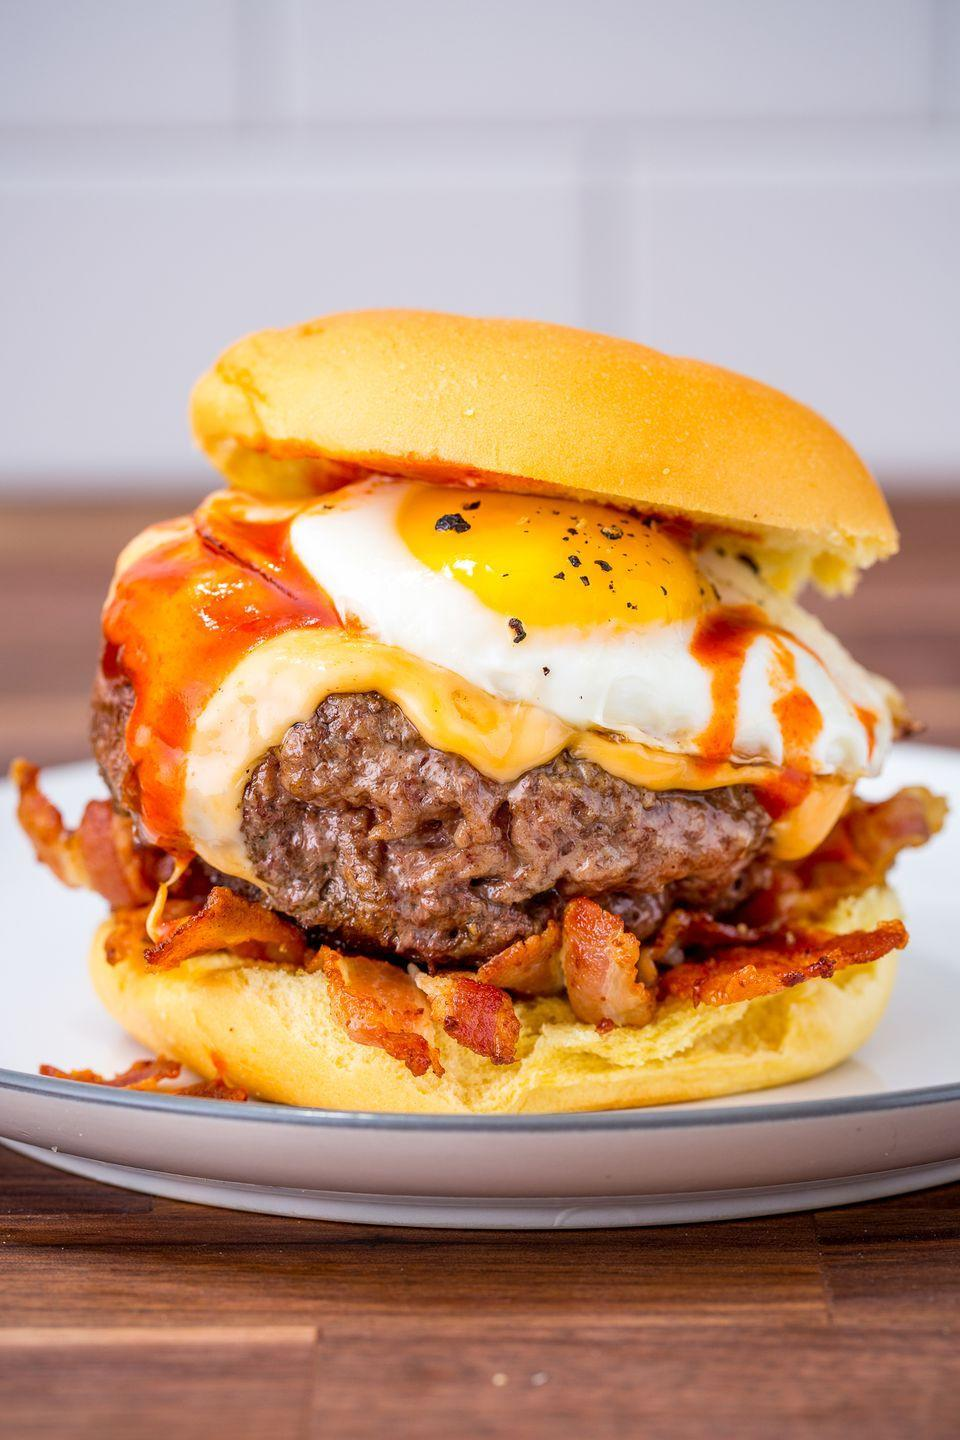 """<p><span>Meet your new favorite burger topping.</span></p><p><span>Get the recipe from </span><a href=""""/cooking/recipe-ideas/recipes/a47644/cheesy-breakfast-burger-recipe/"""" data-ylk=""""slk:Delish"""" class=""""link rapid-noclick-resp"""">Delish</a><span>.</span></p>"""